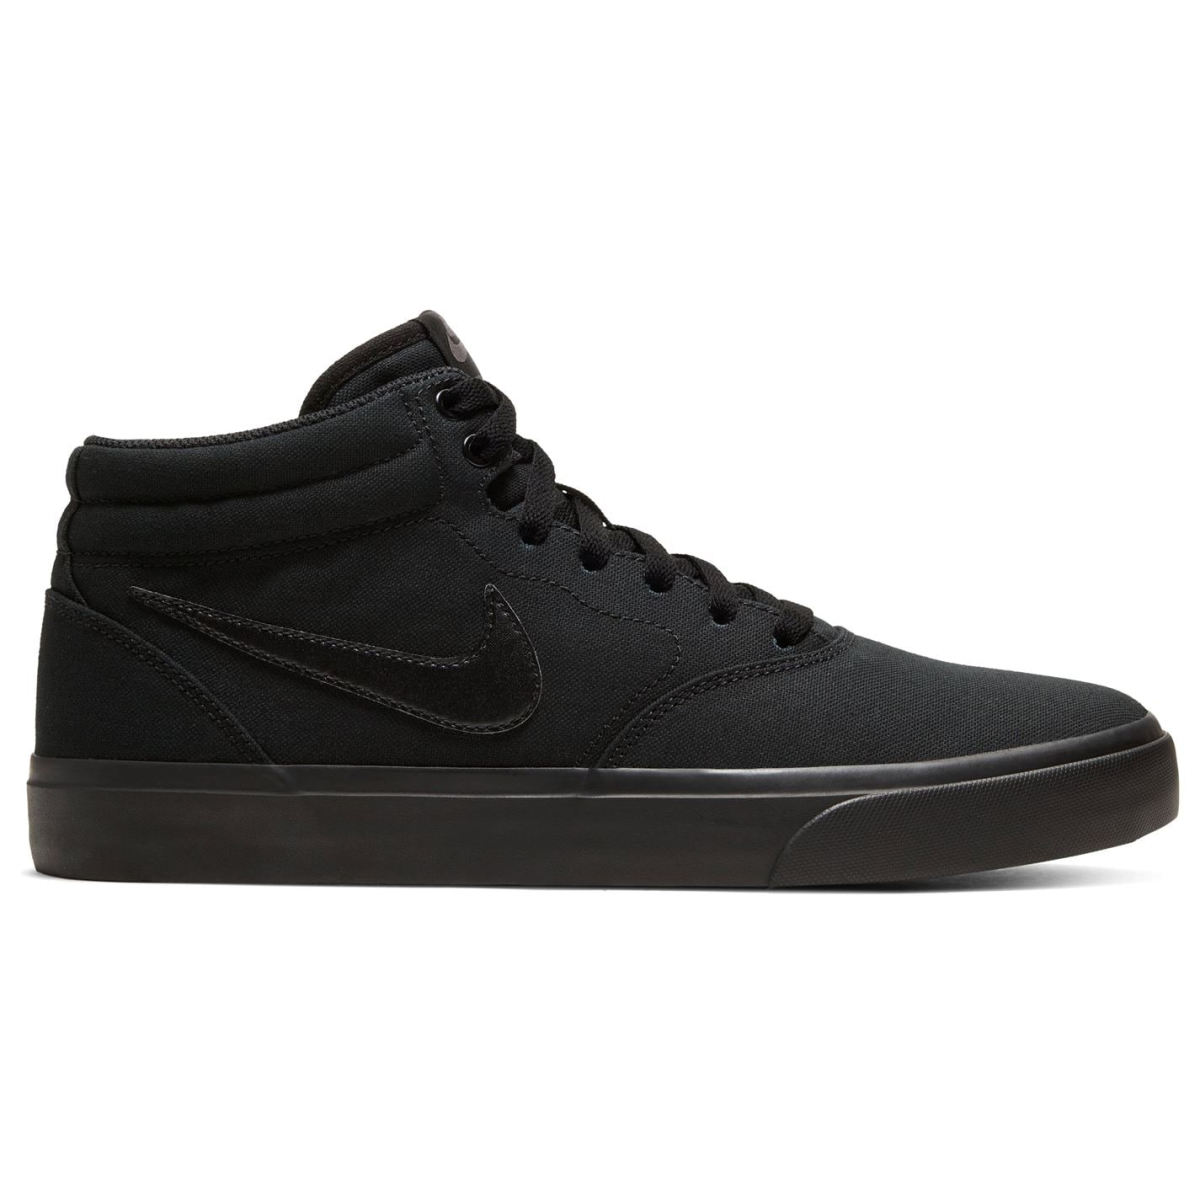 Nike-SB-Lot-Mid-Hommes-Skate-Chaussures-Skater-Chaussures-Chaussures-De-Sport-Toile-2017 miniature 9